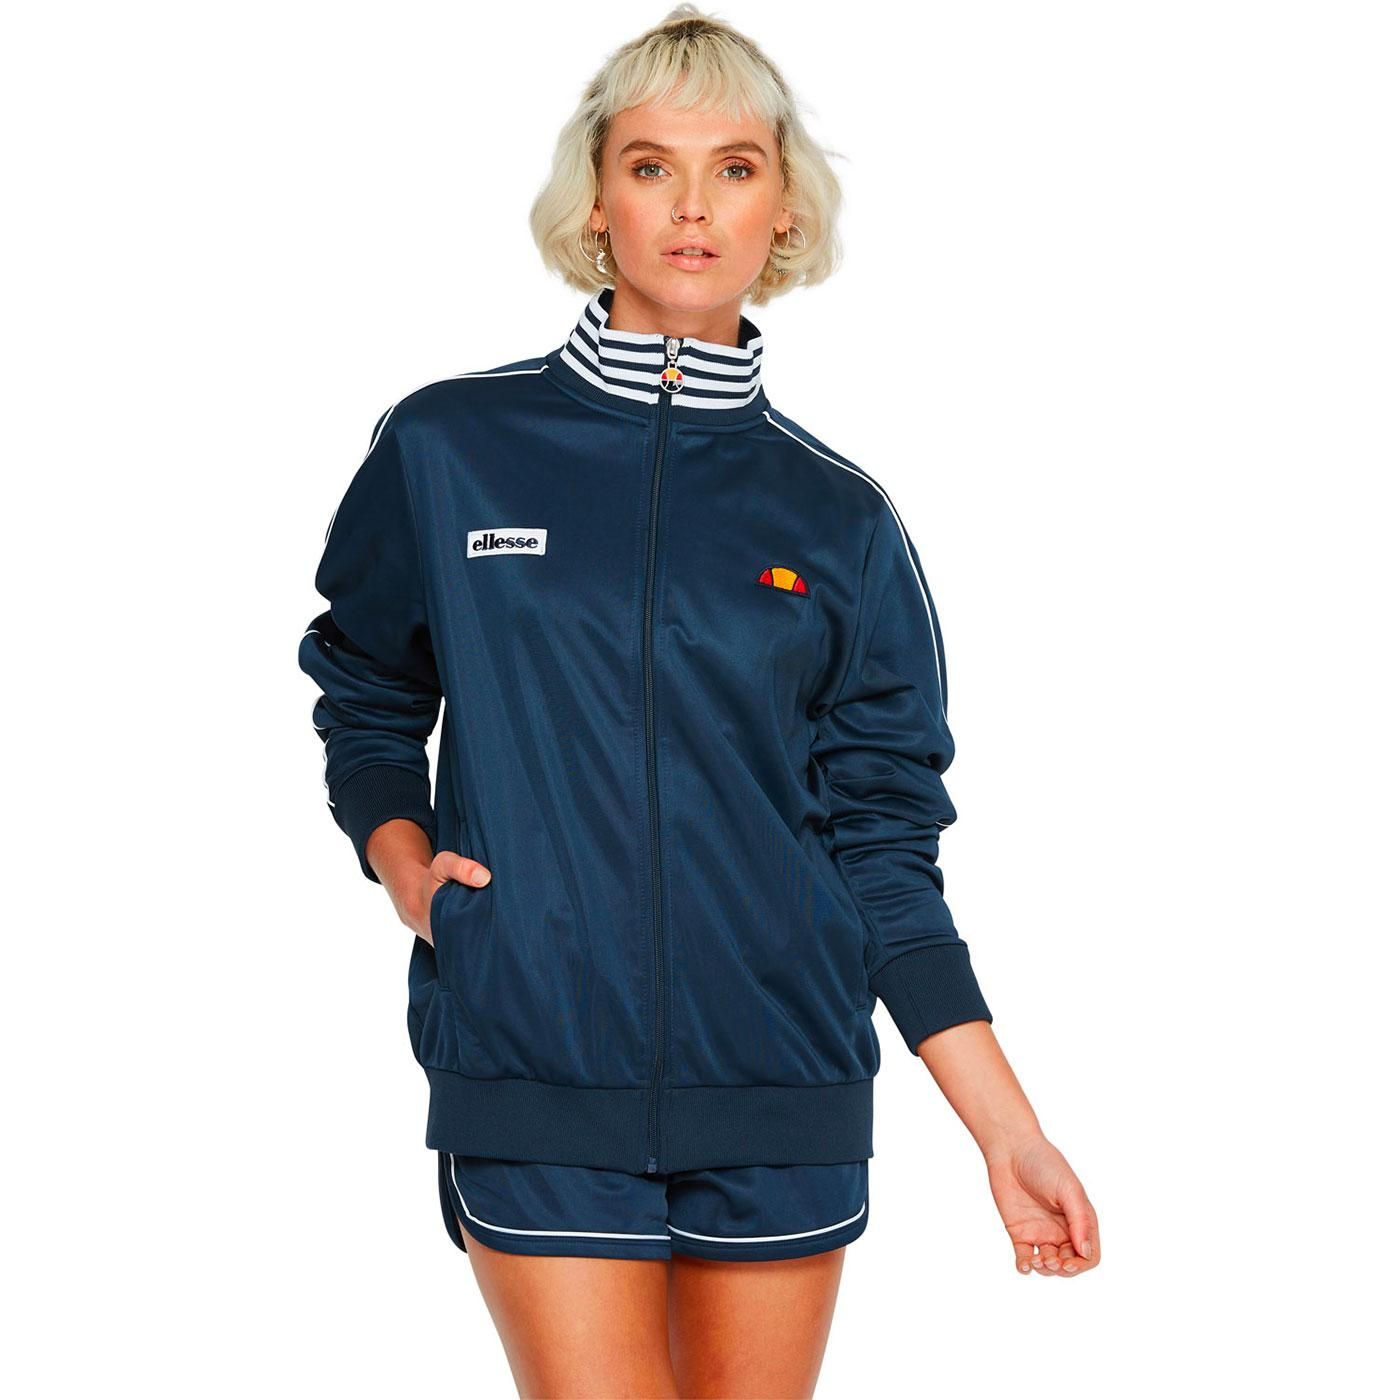 Billi ELLESSE Women's Retro 1980s Track Top (Navy)